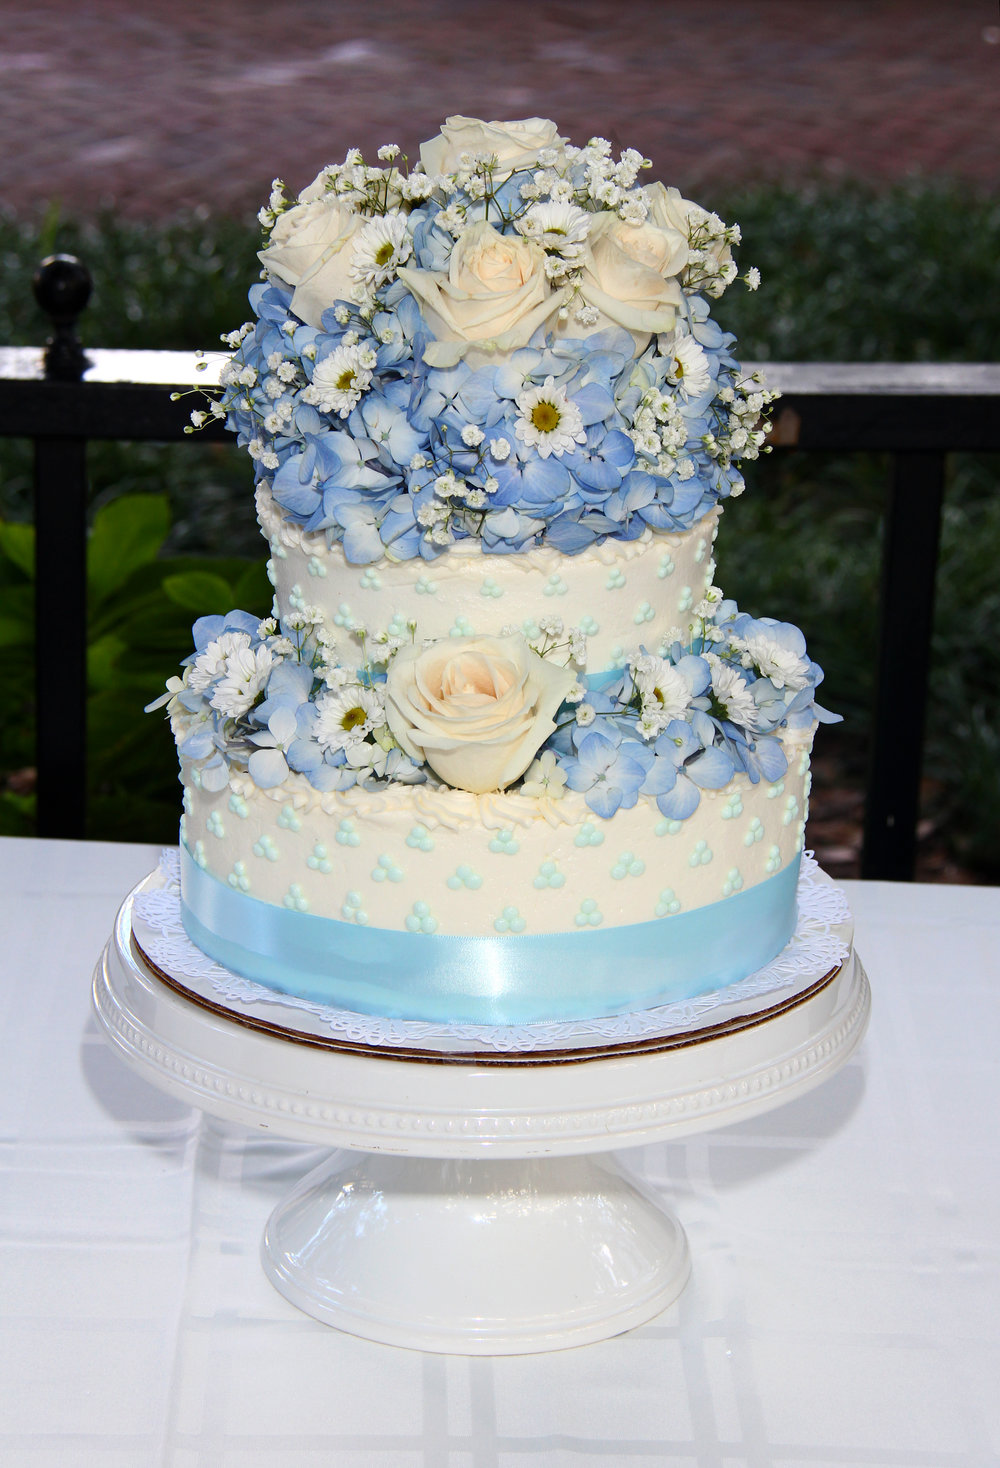 Wedding cake with blue flowers